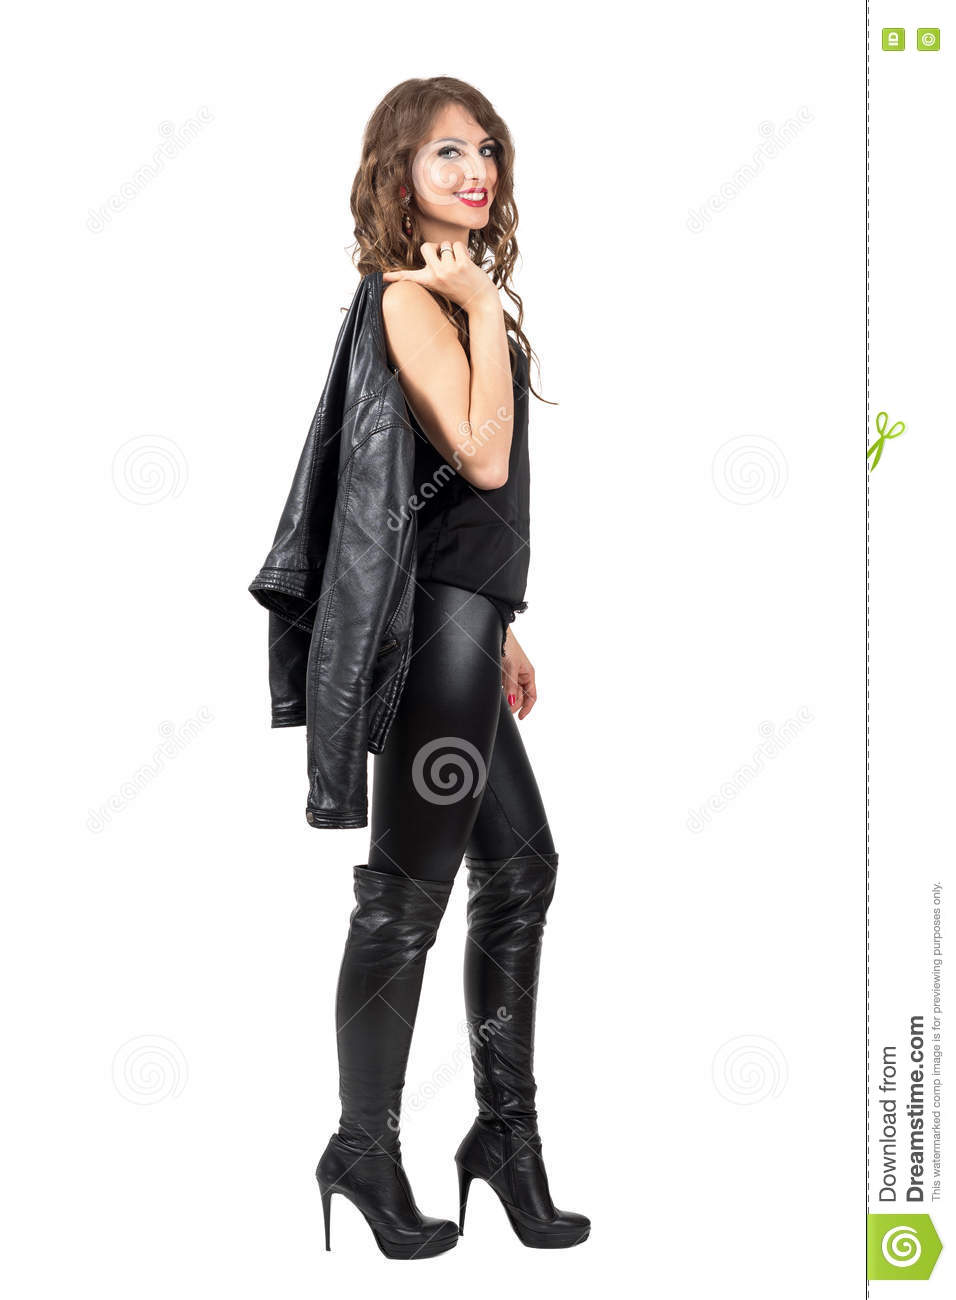 Stylish Beautiful Woman In Leather Boots And Pants Carrying ...